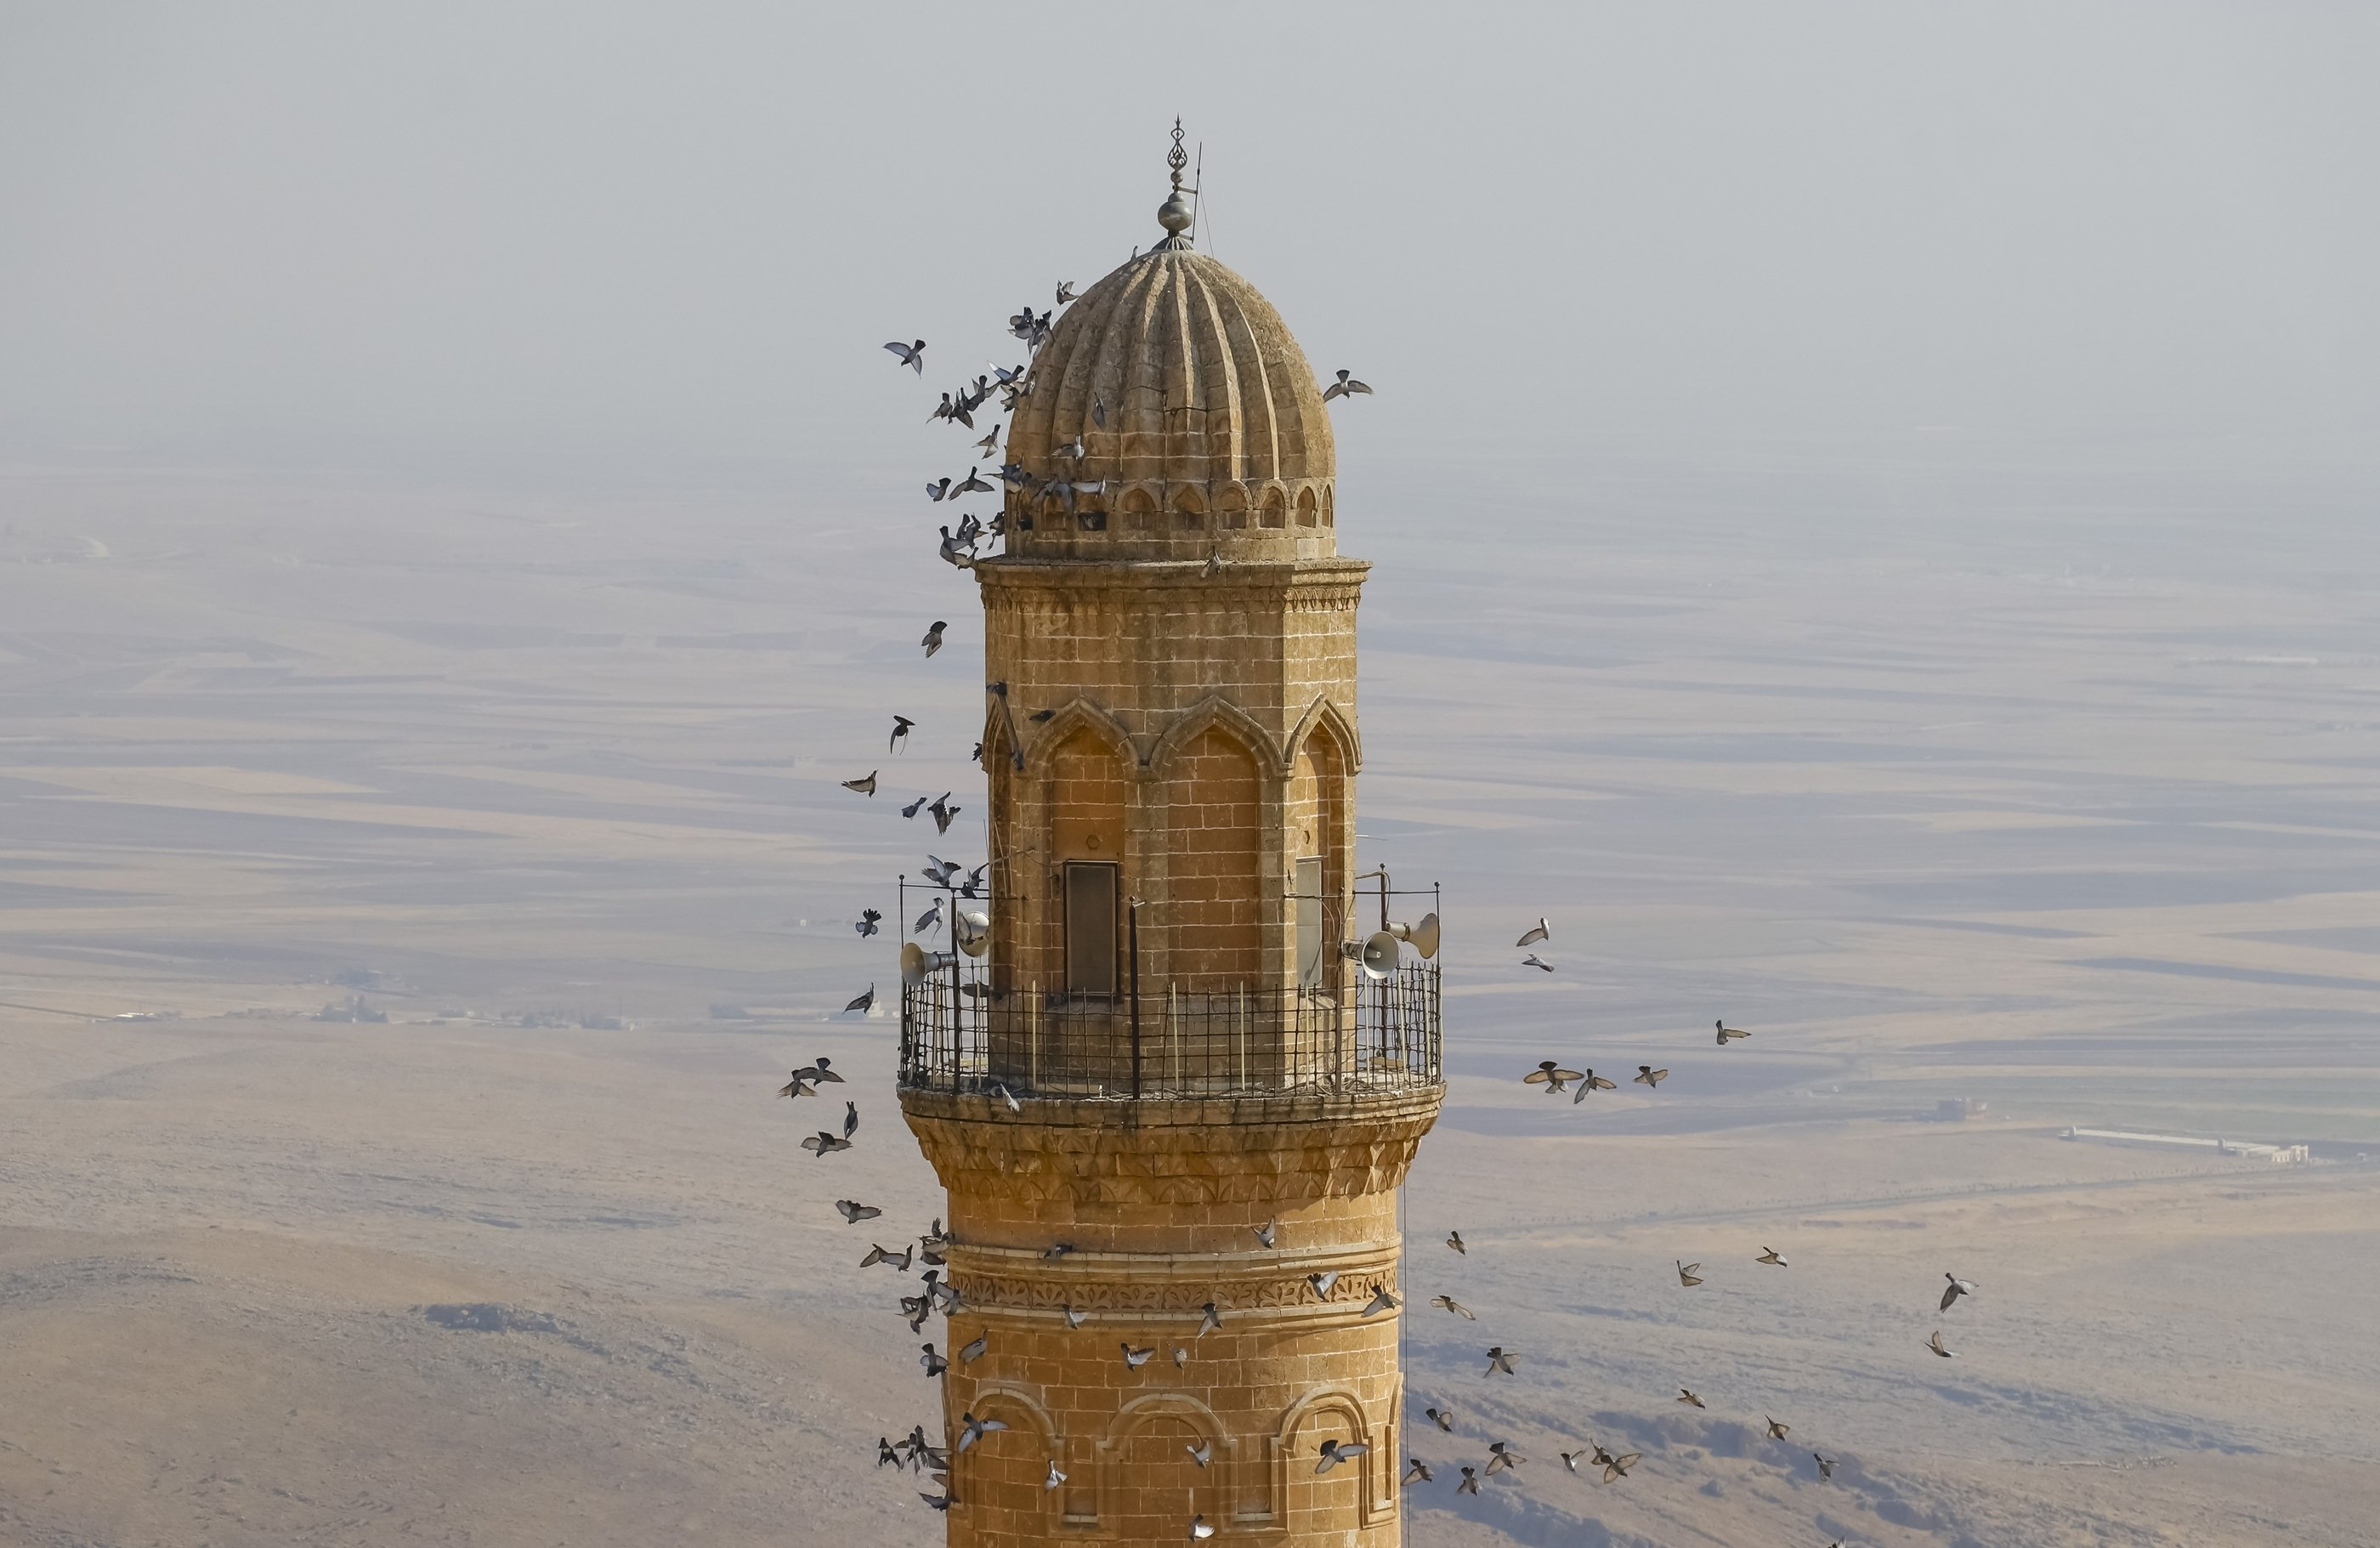 This picture dated March 25, 2021 shows Mardin's 12th century Grand Mosque (Ulu Cami) overlooking the Mesopotamian plains, in southeastern Turkey. (DHA Photo)